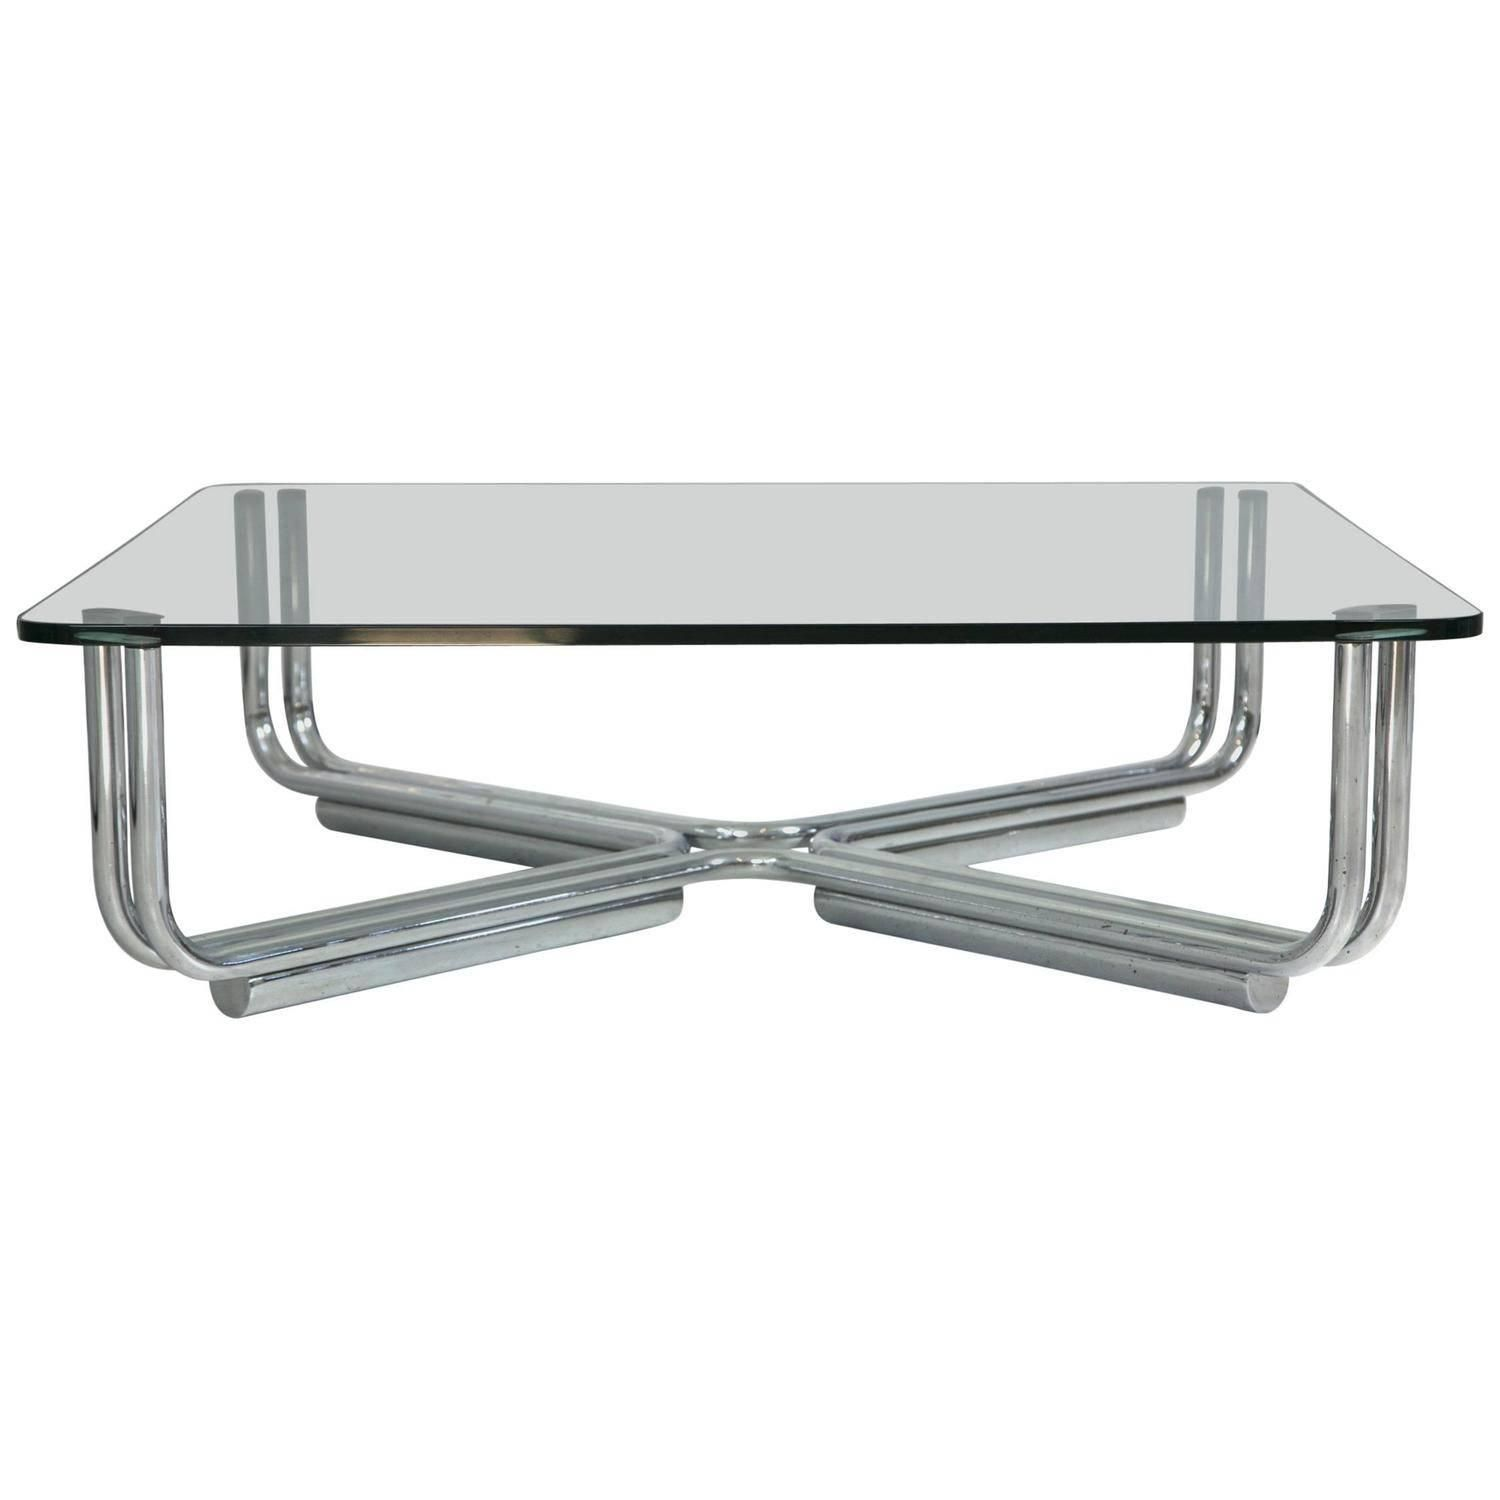 Tubular Chrome And Glass Coffee Table By Gianfranco Frattini For Cassina [ 1500 x 1500 Pixel ]